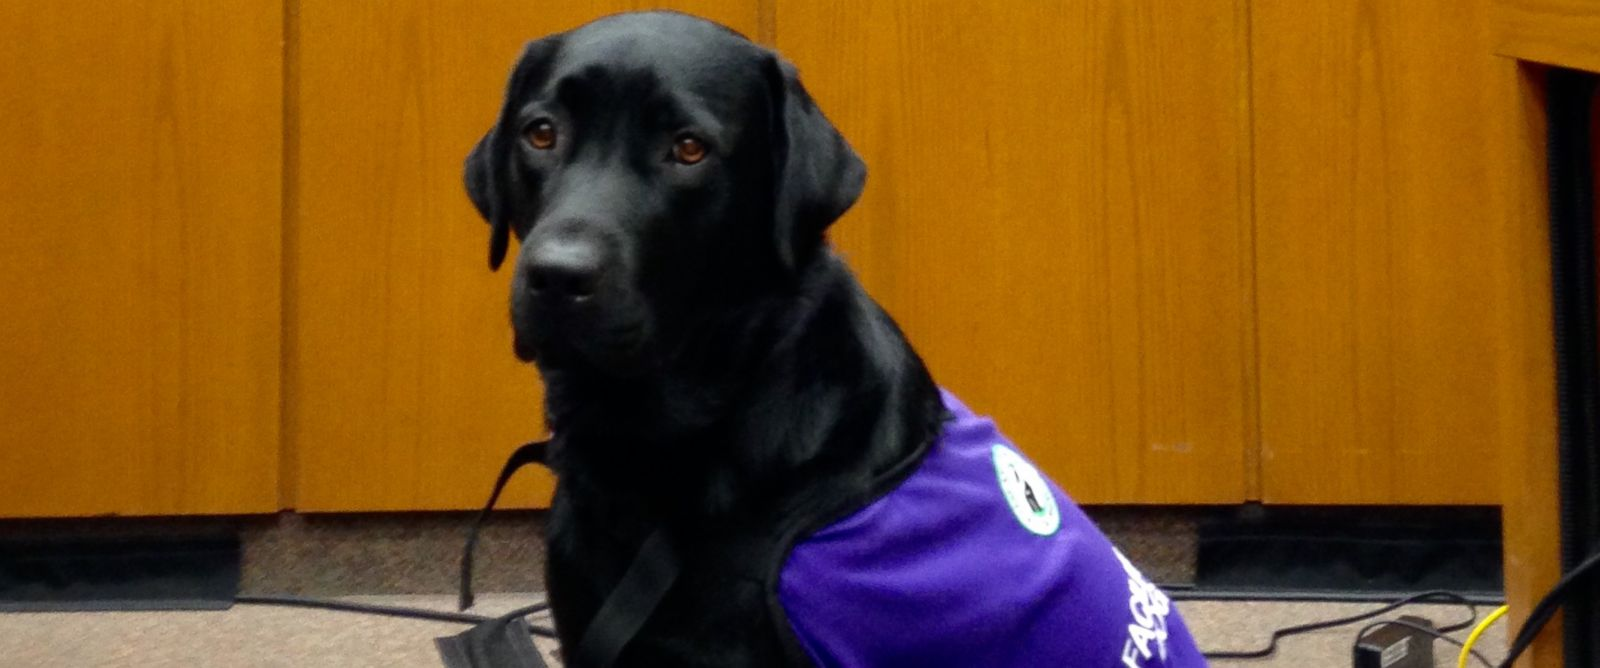 PHOTO: Merel, an 18-month-old service dog, helps soothe kids in London, Ontario testify in court.